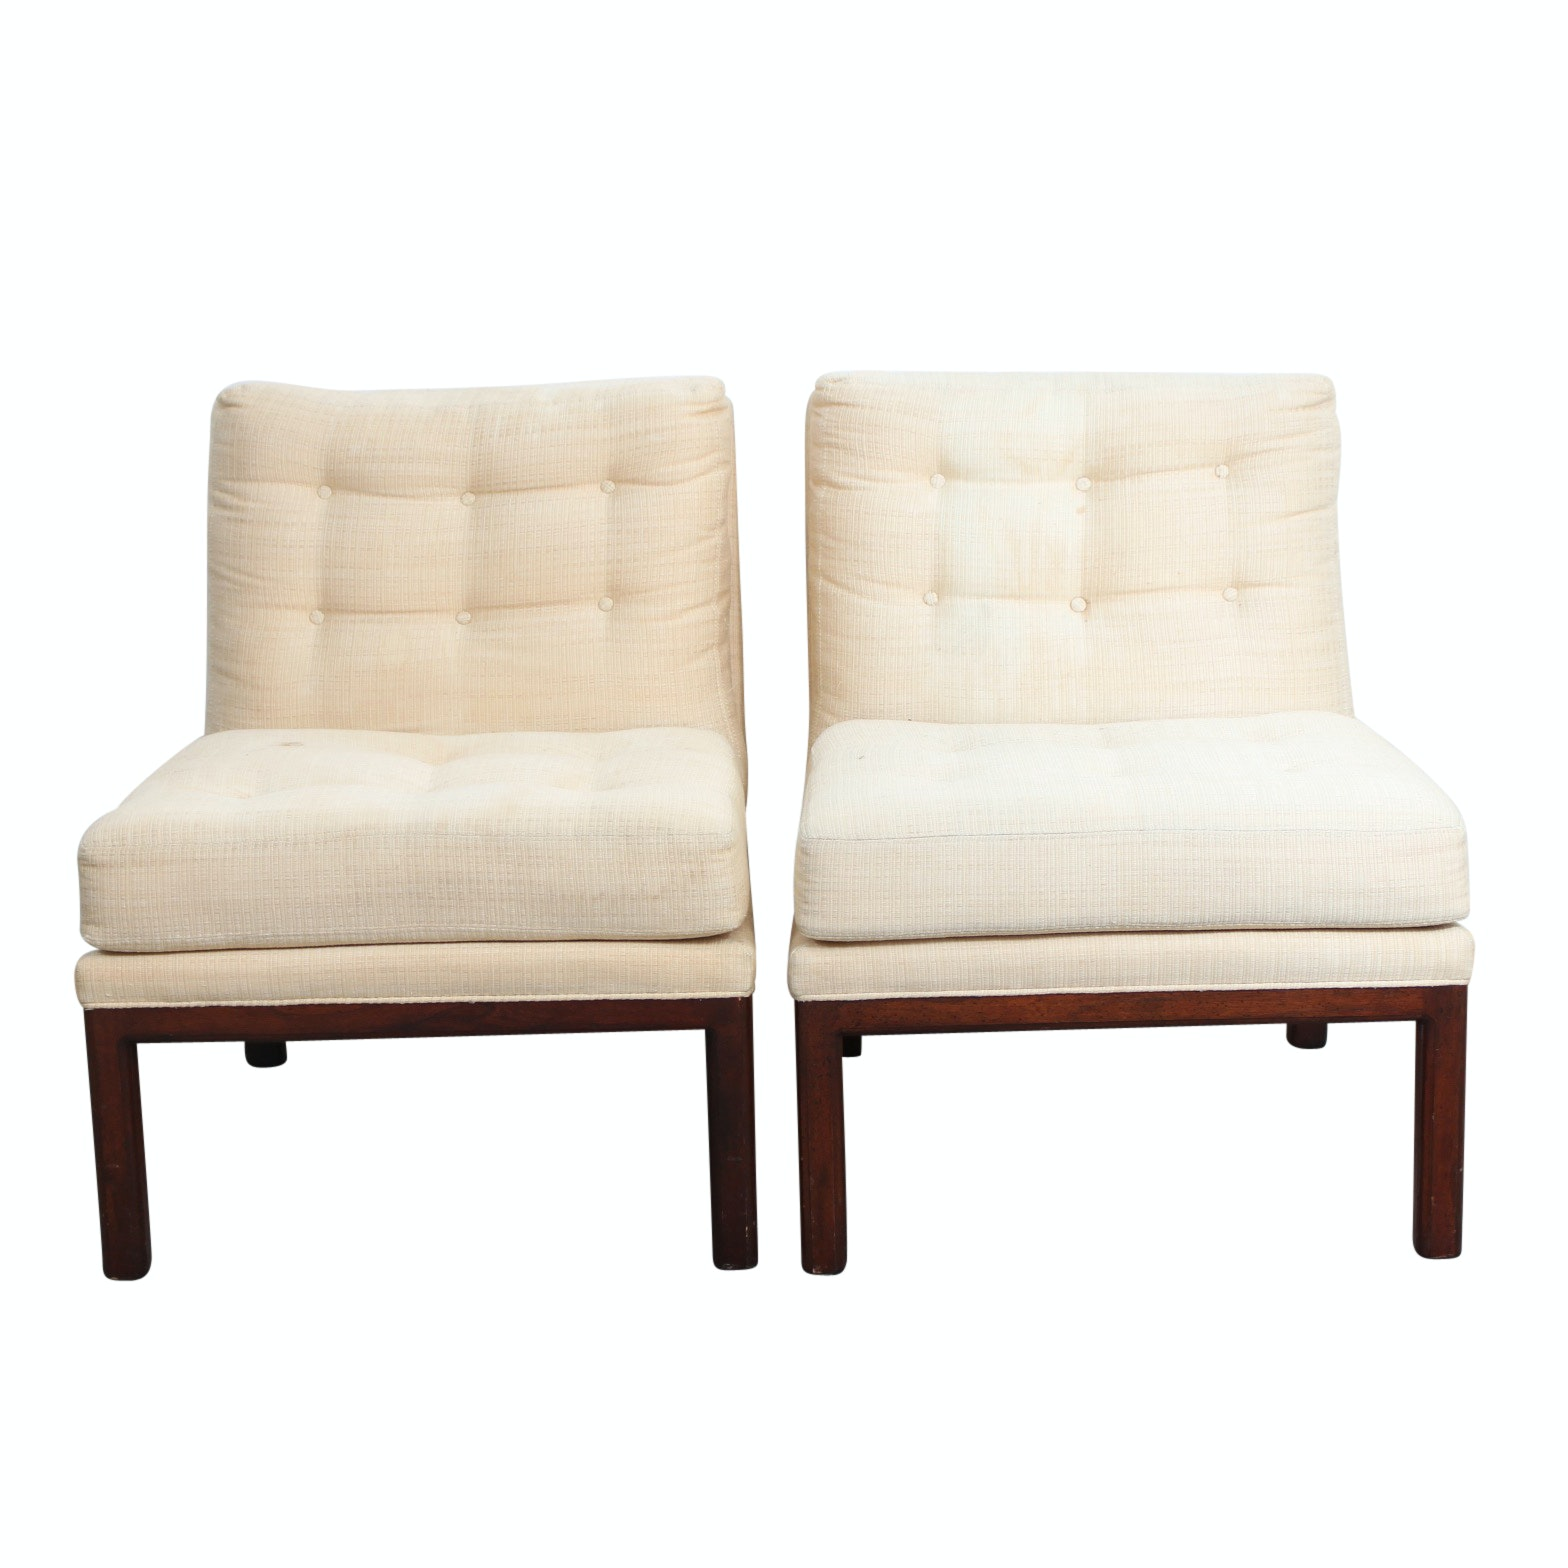 Two Mid Century Modern Style Upholstered Slipper Chairs